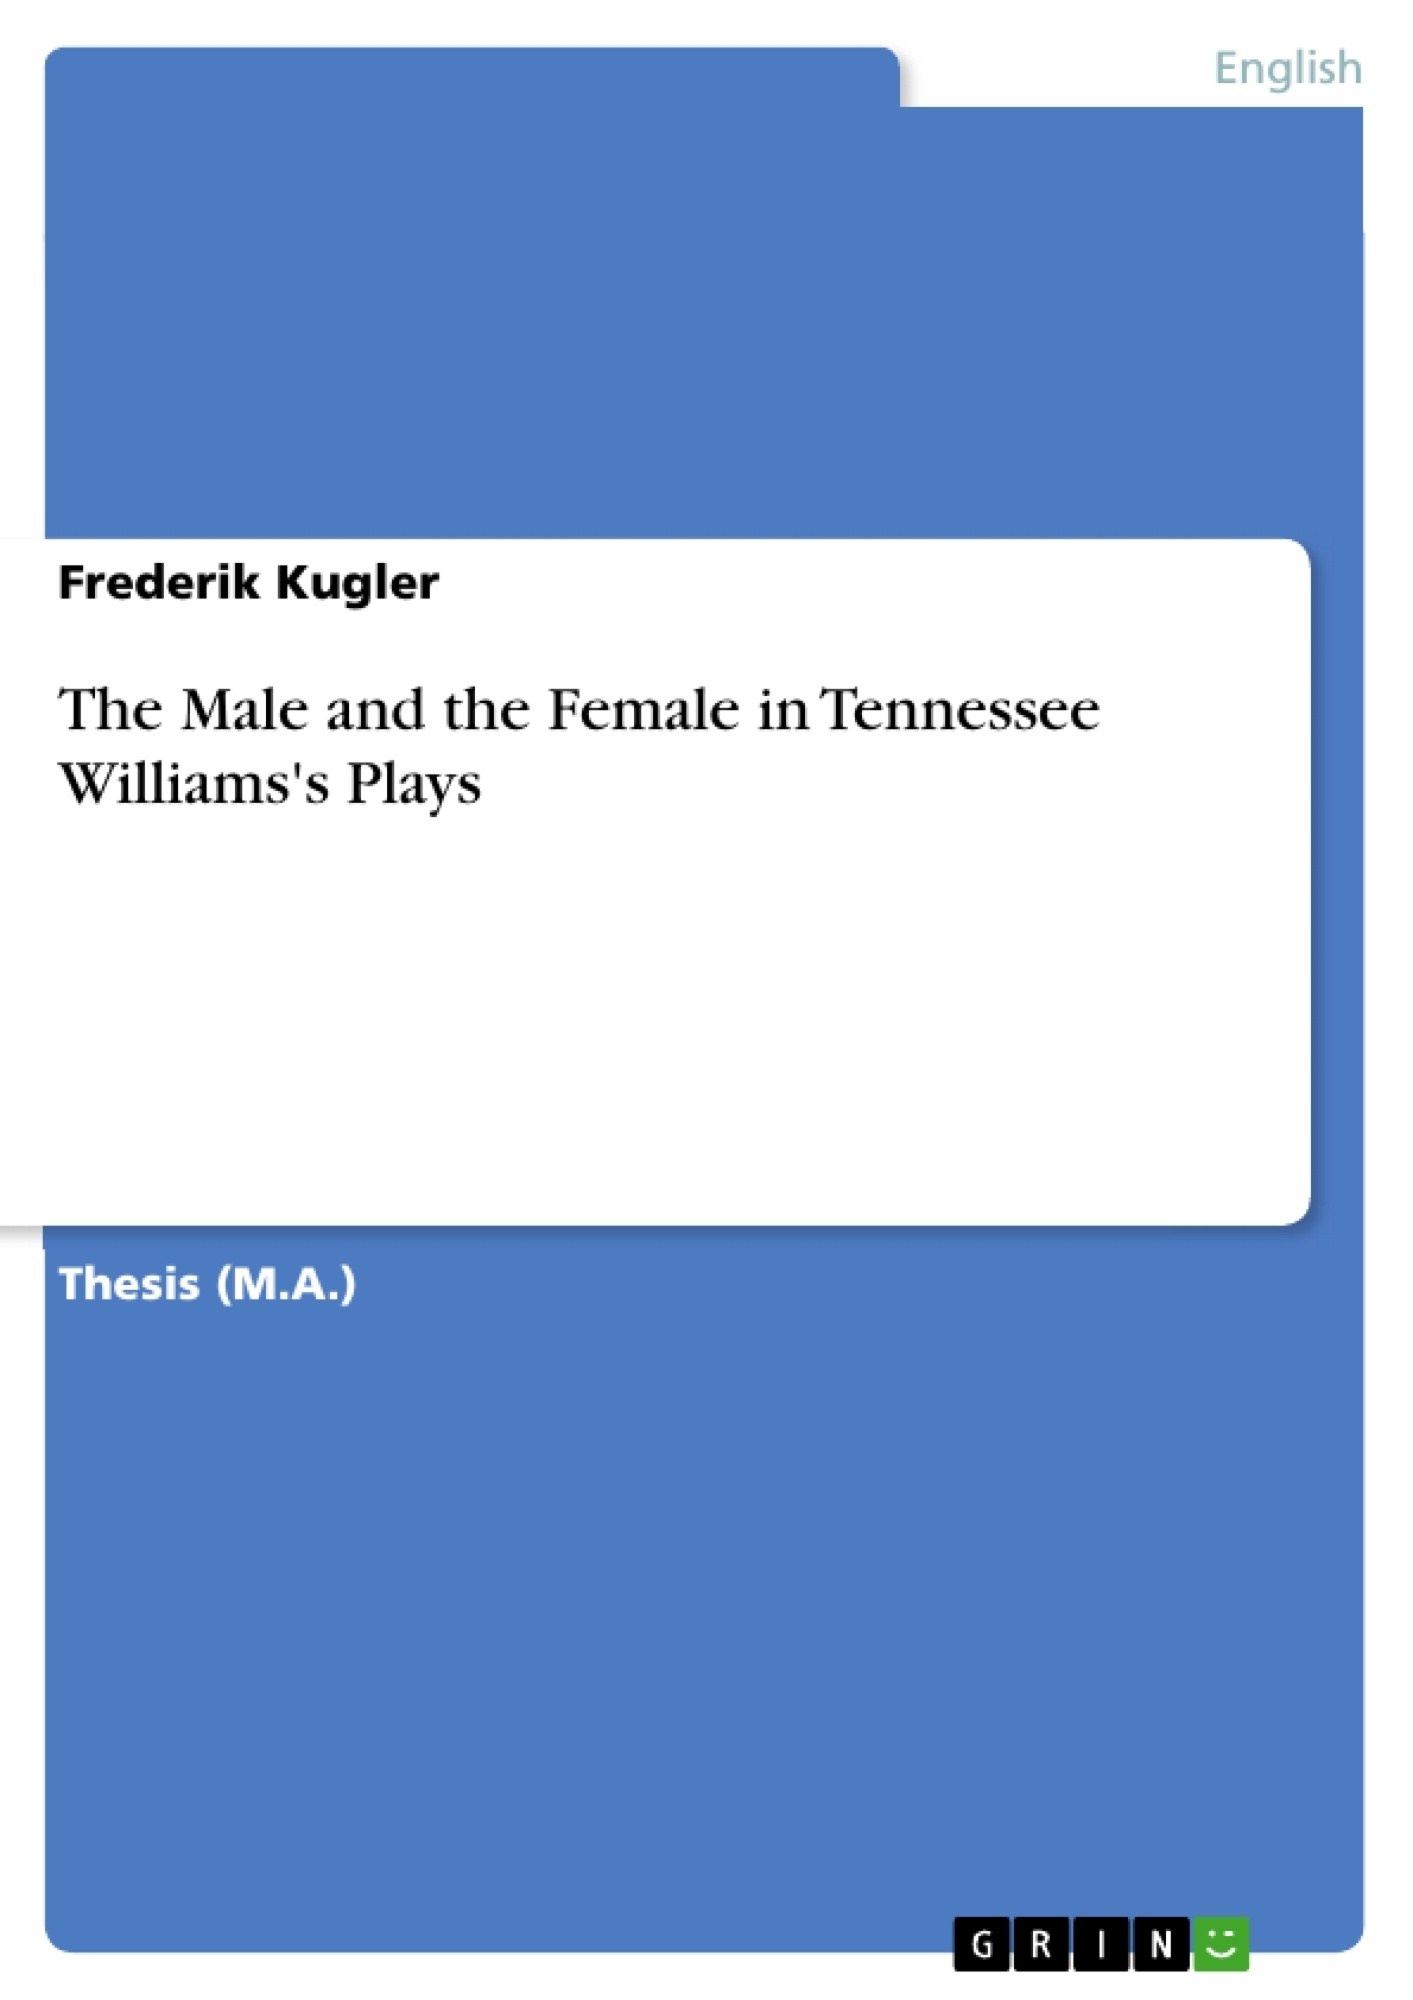 Title: The Male and the Female in Tennessee Williams's Plays